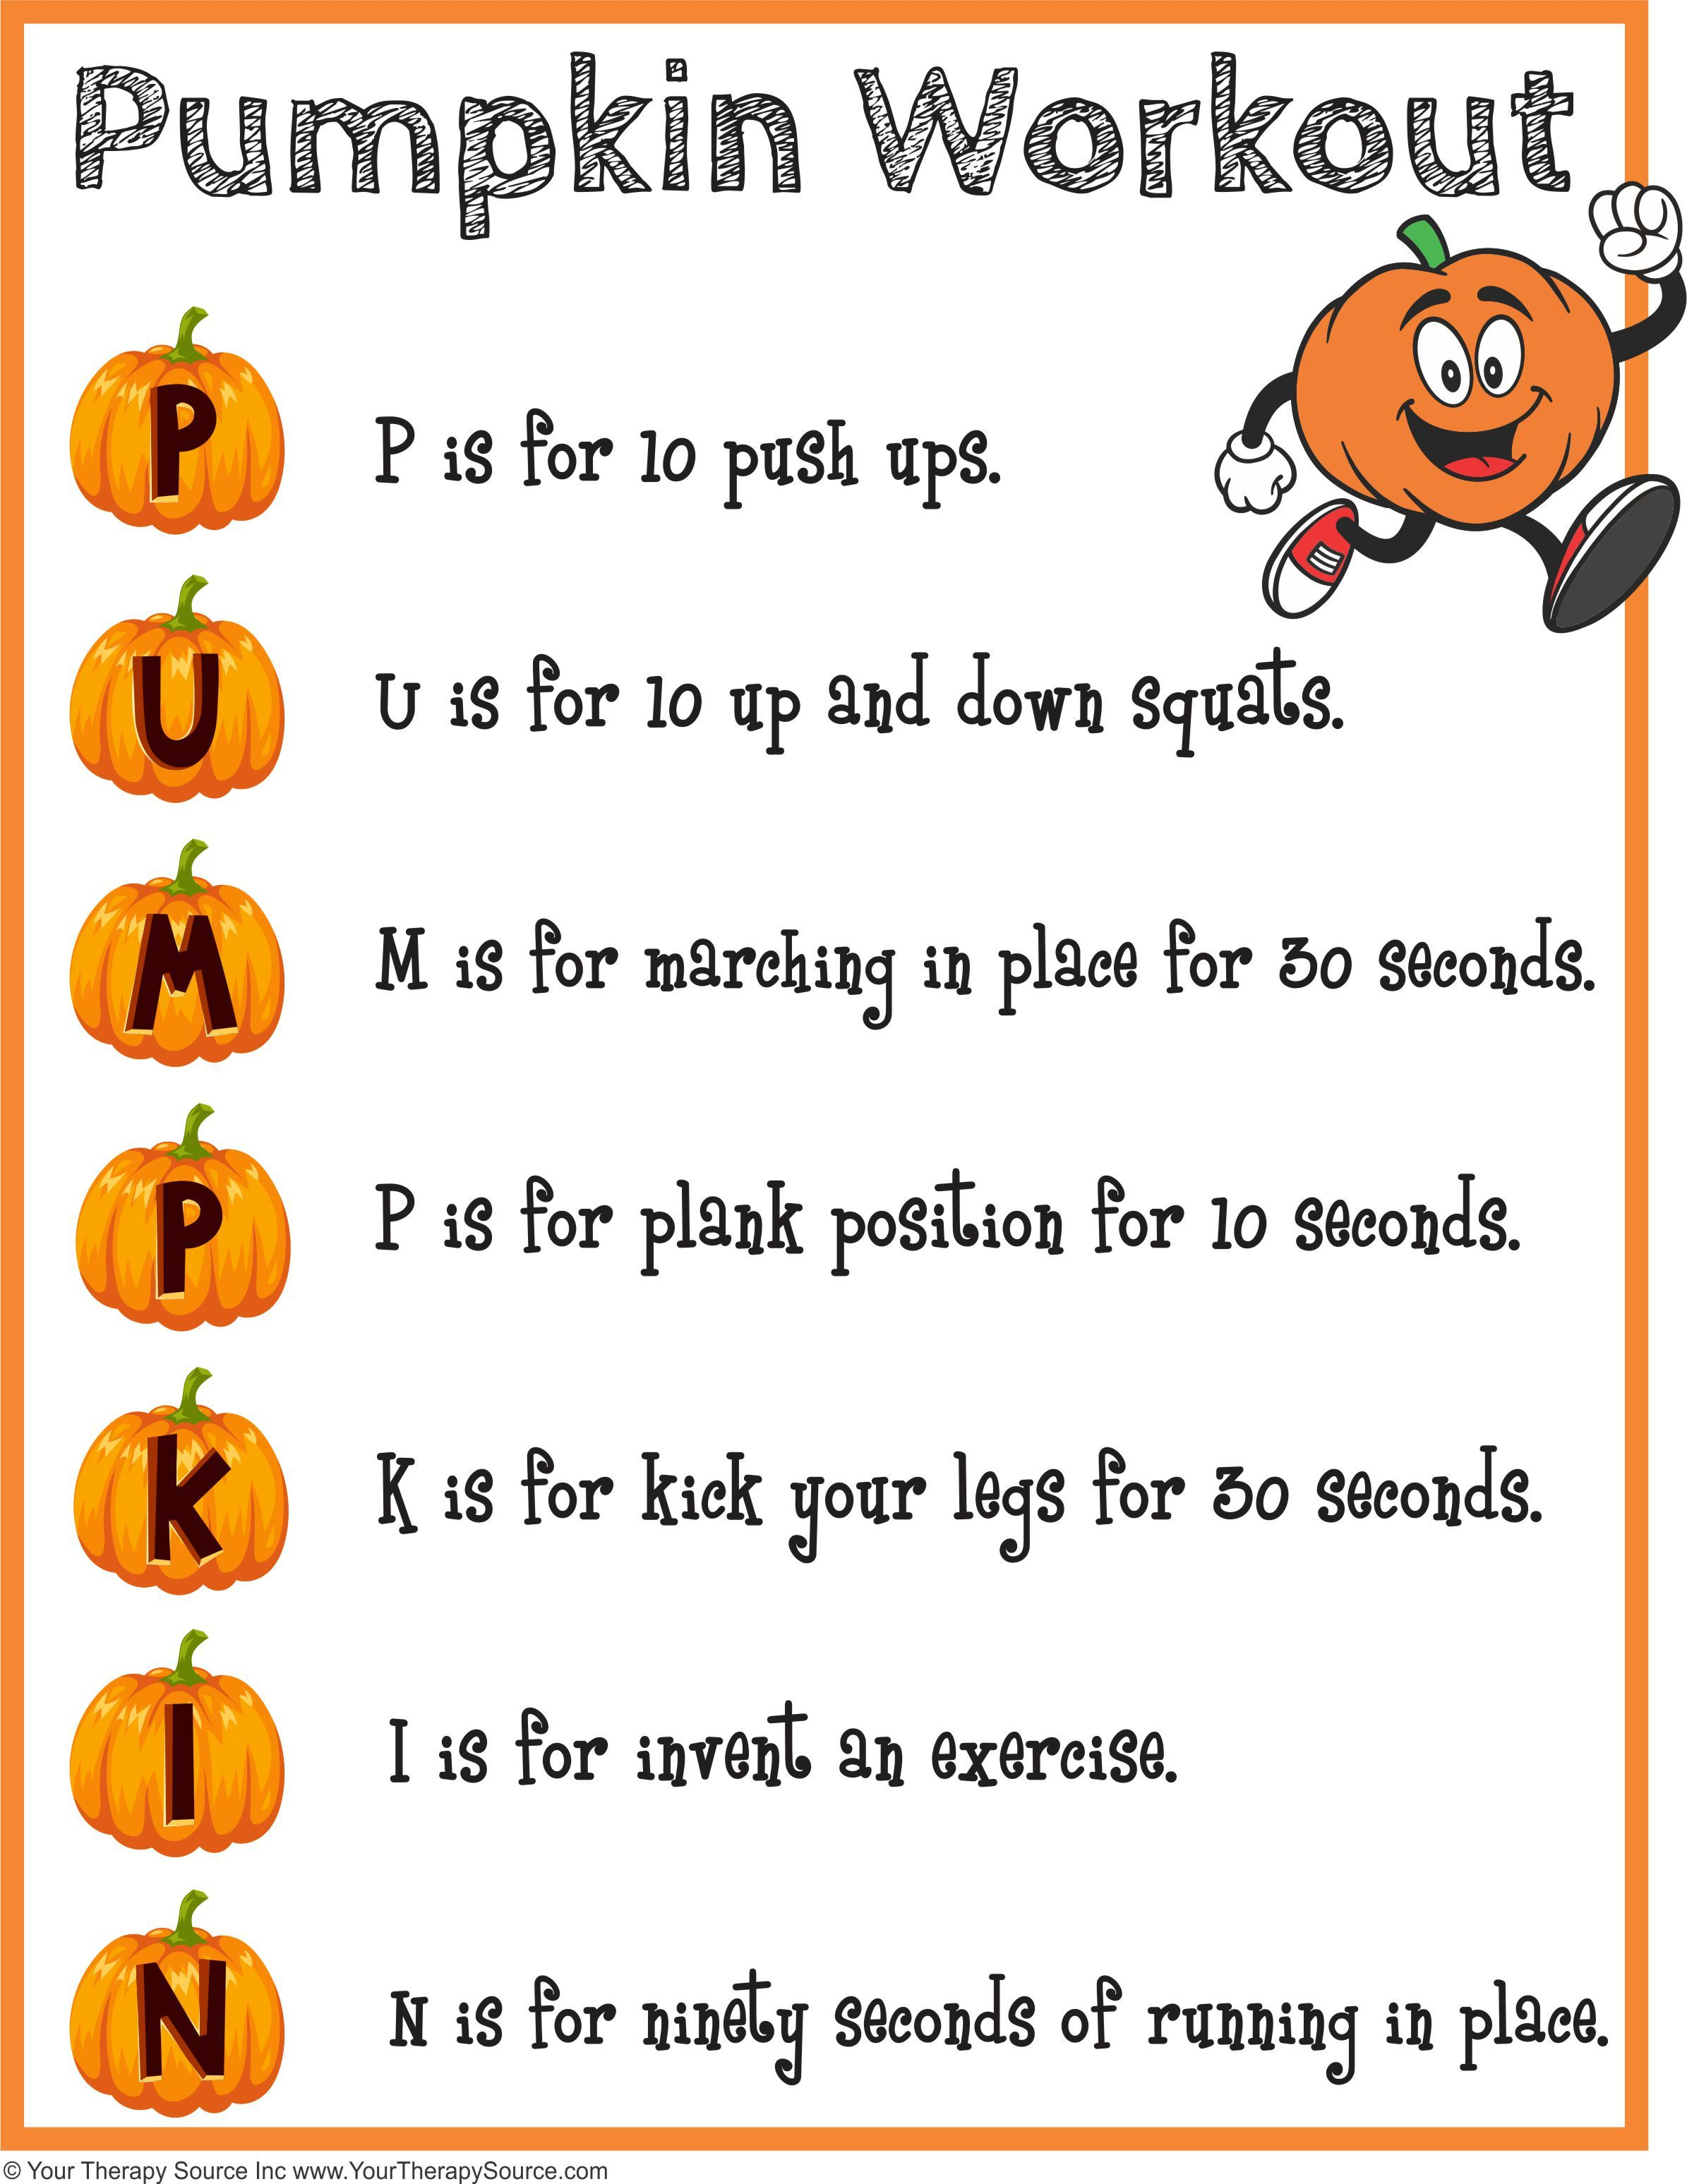 Try This Pumpkin Workout To Encourage Physical Activity